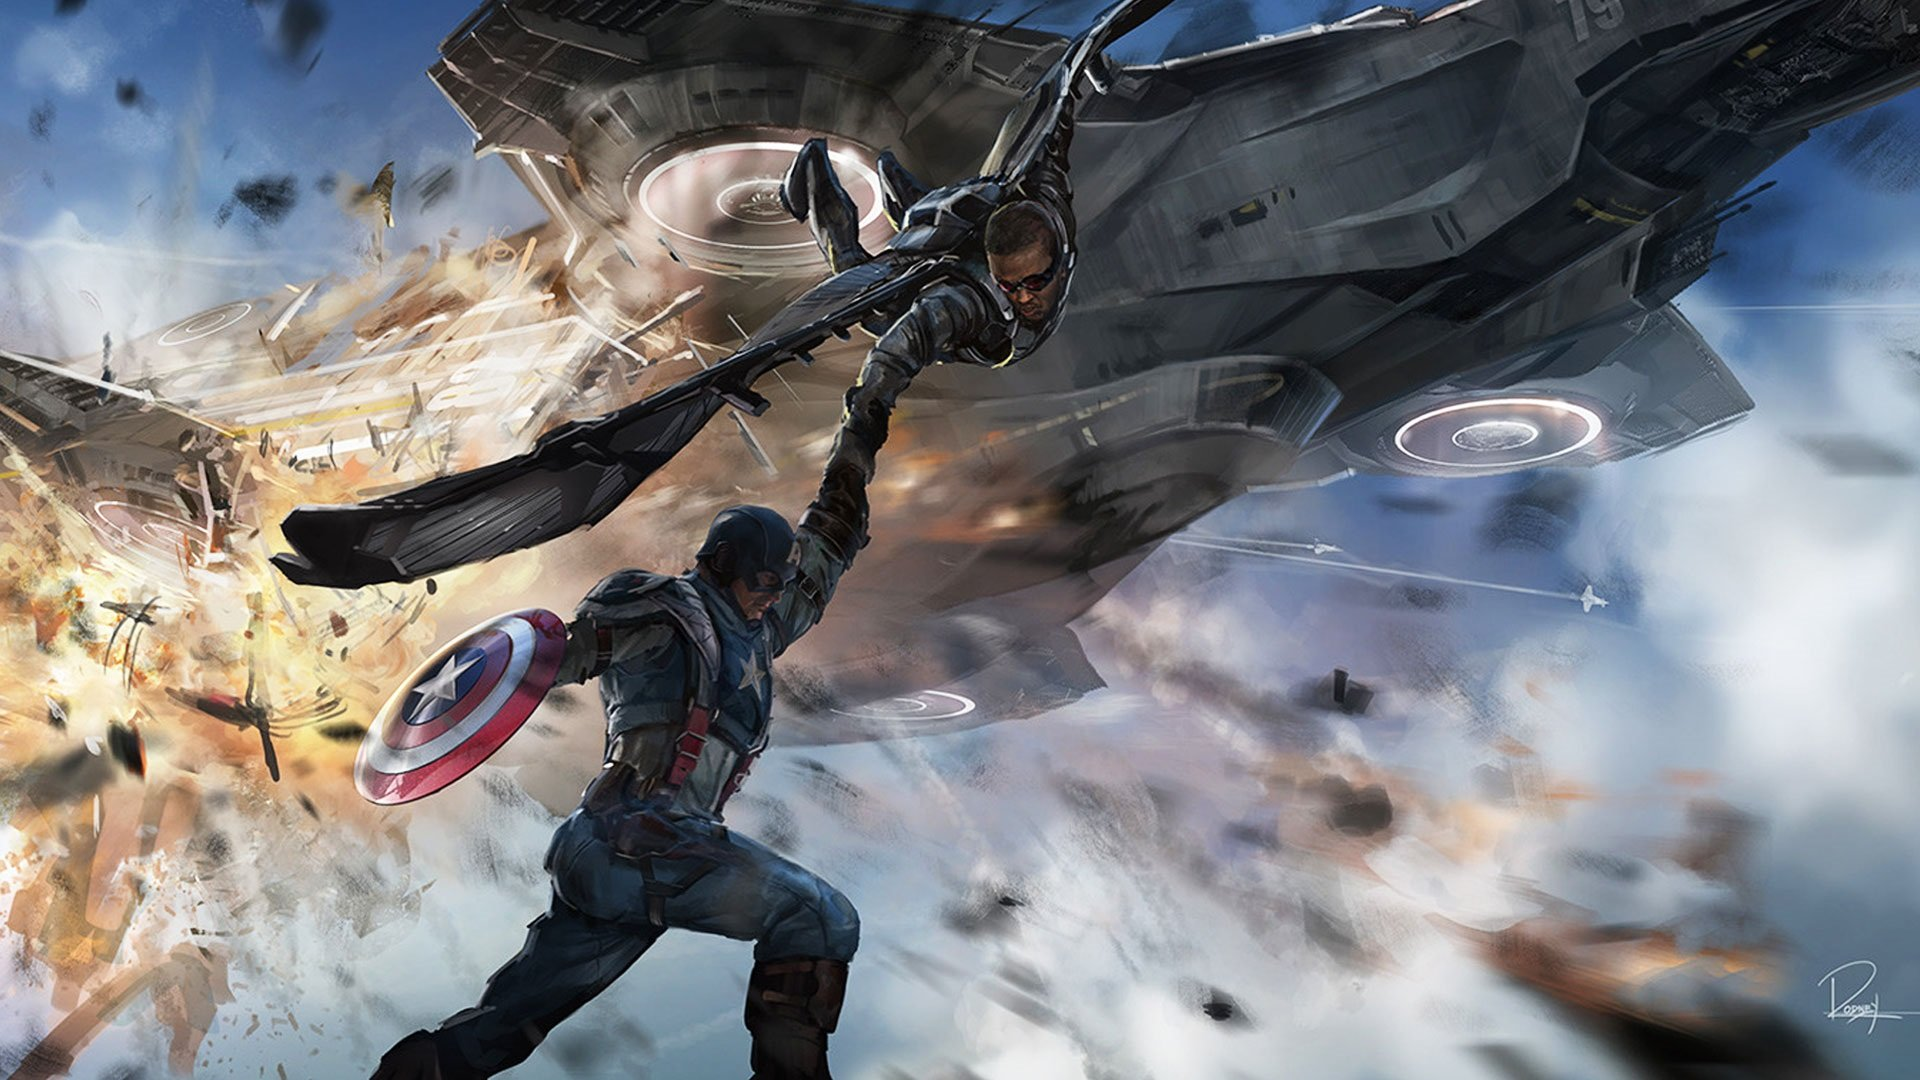 captain america winter soldier action adventure sci-fi superhero